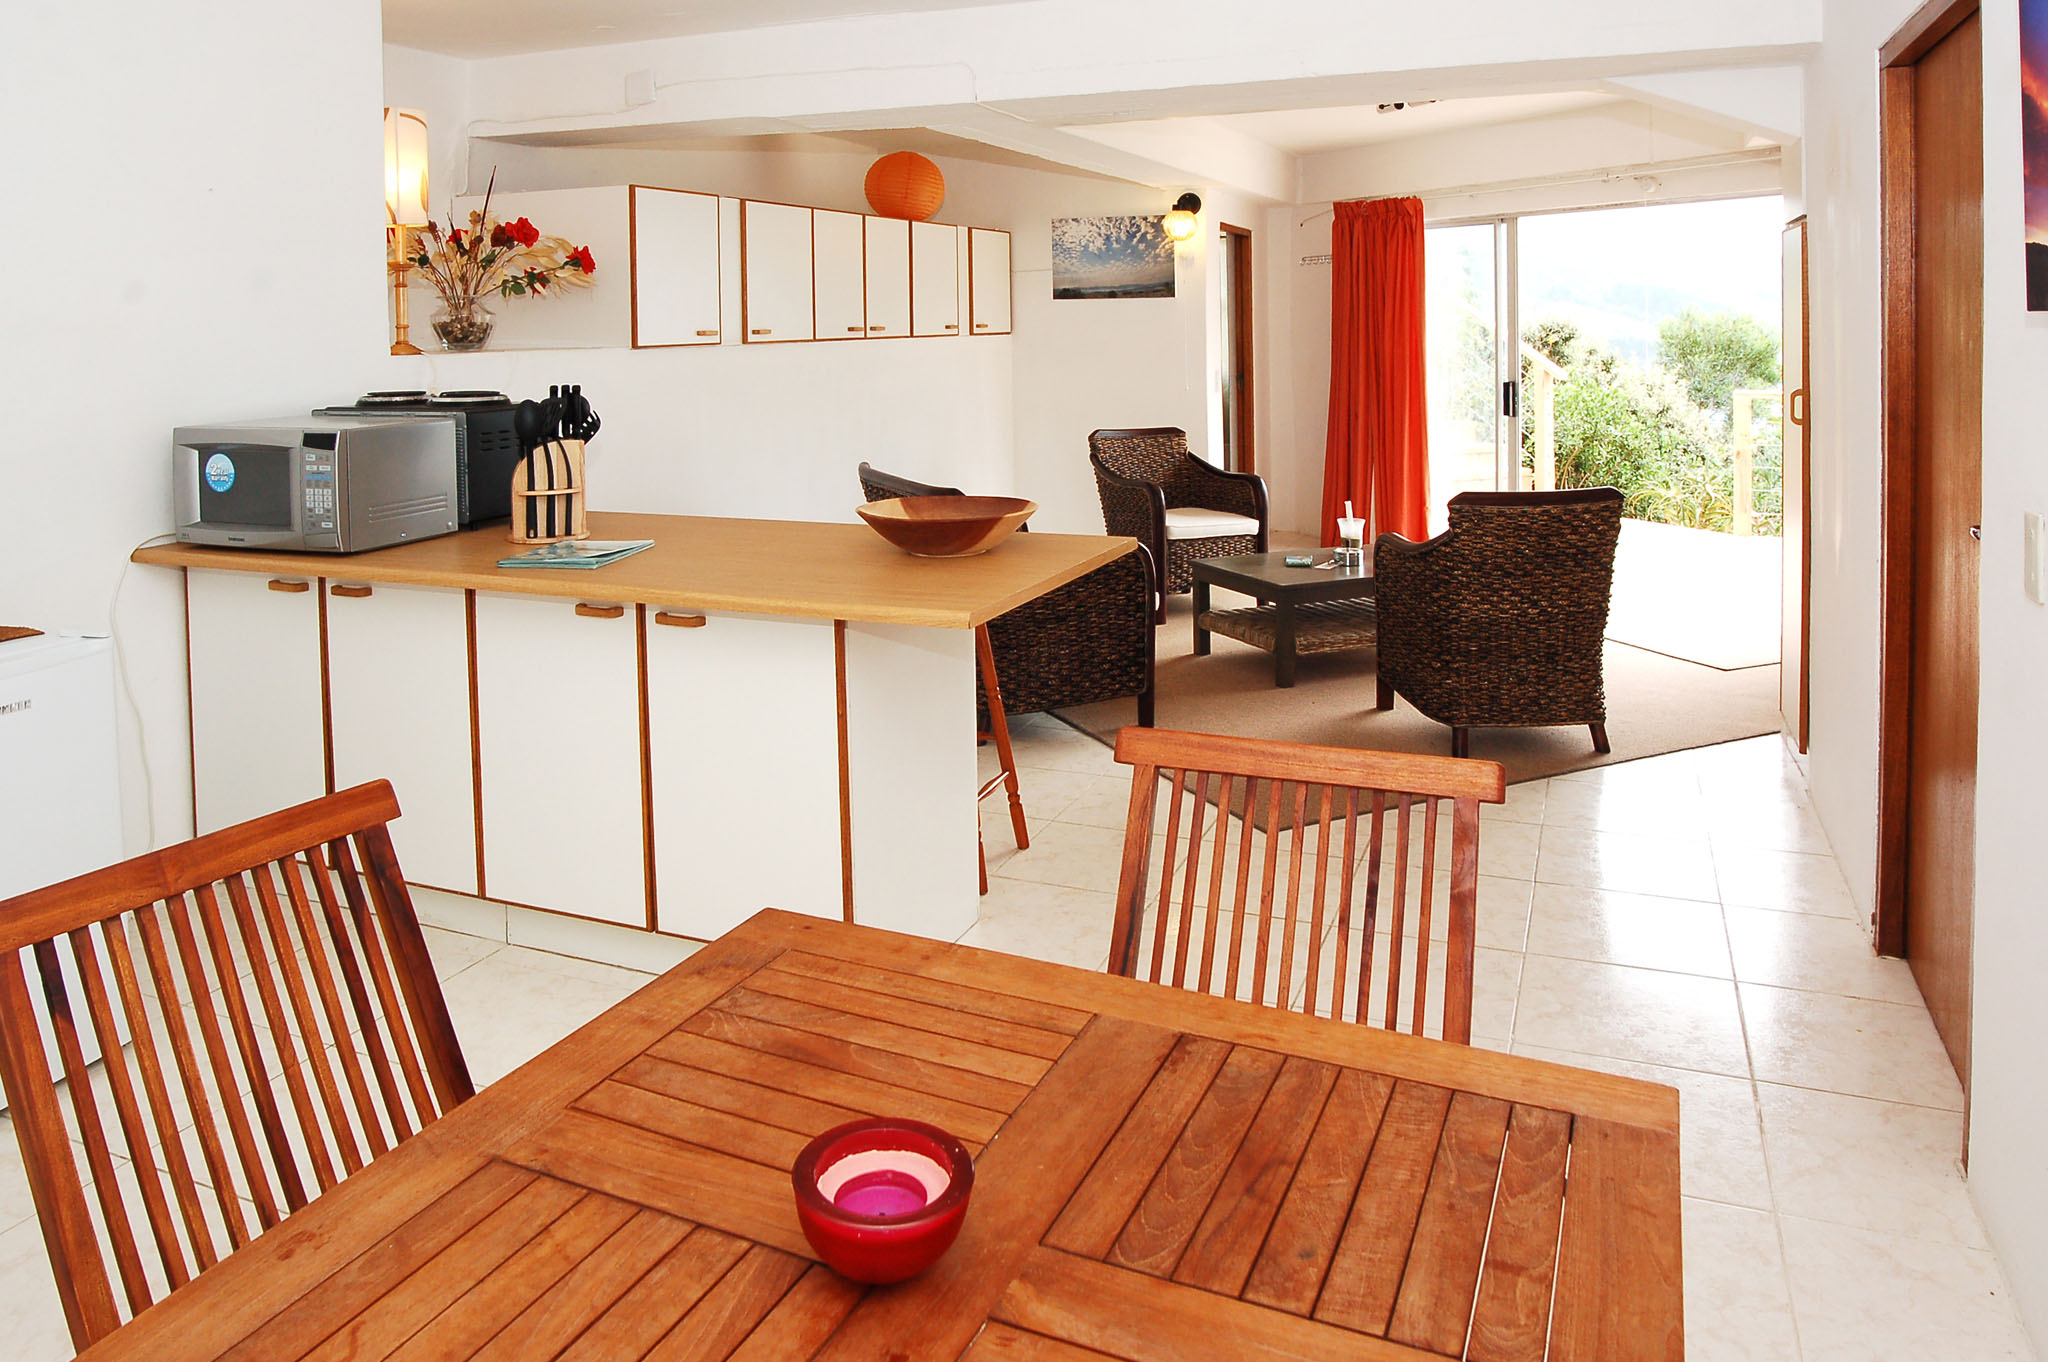 Eagle House, Knysna Heads Accommodation; Airy and great for groups enjoying the pool